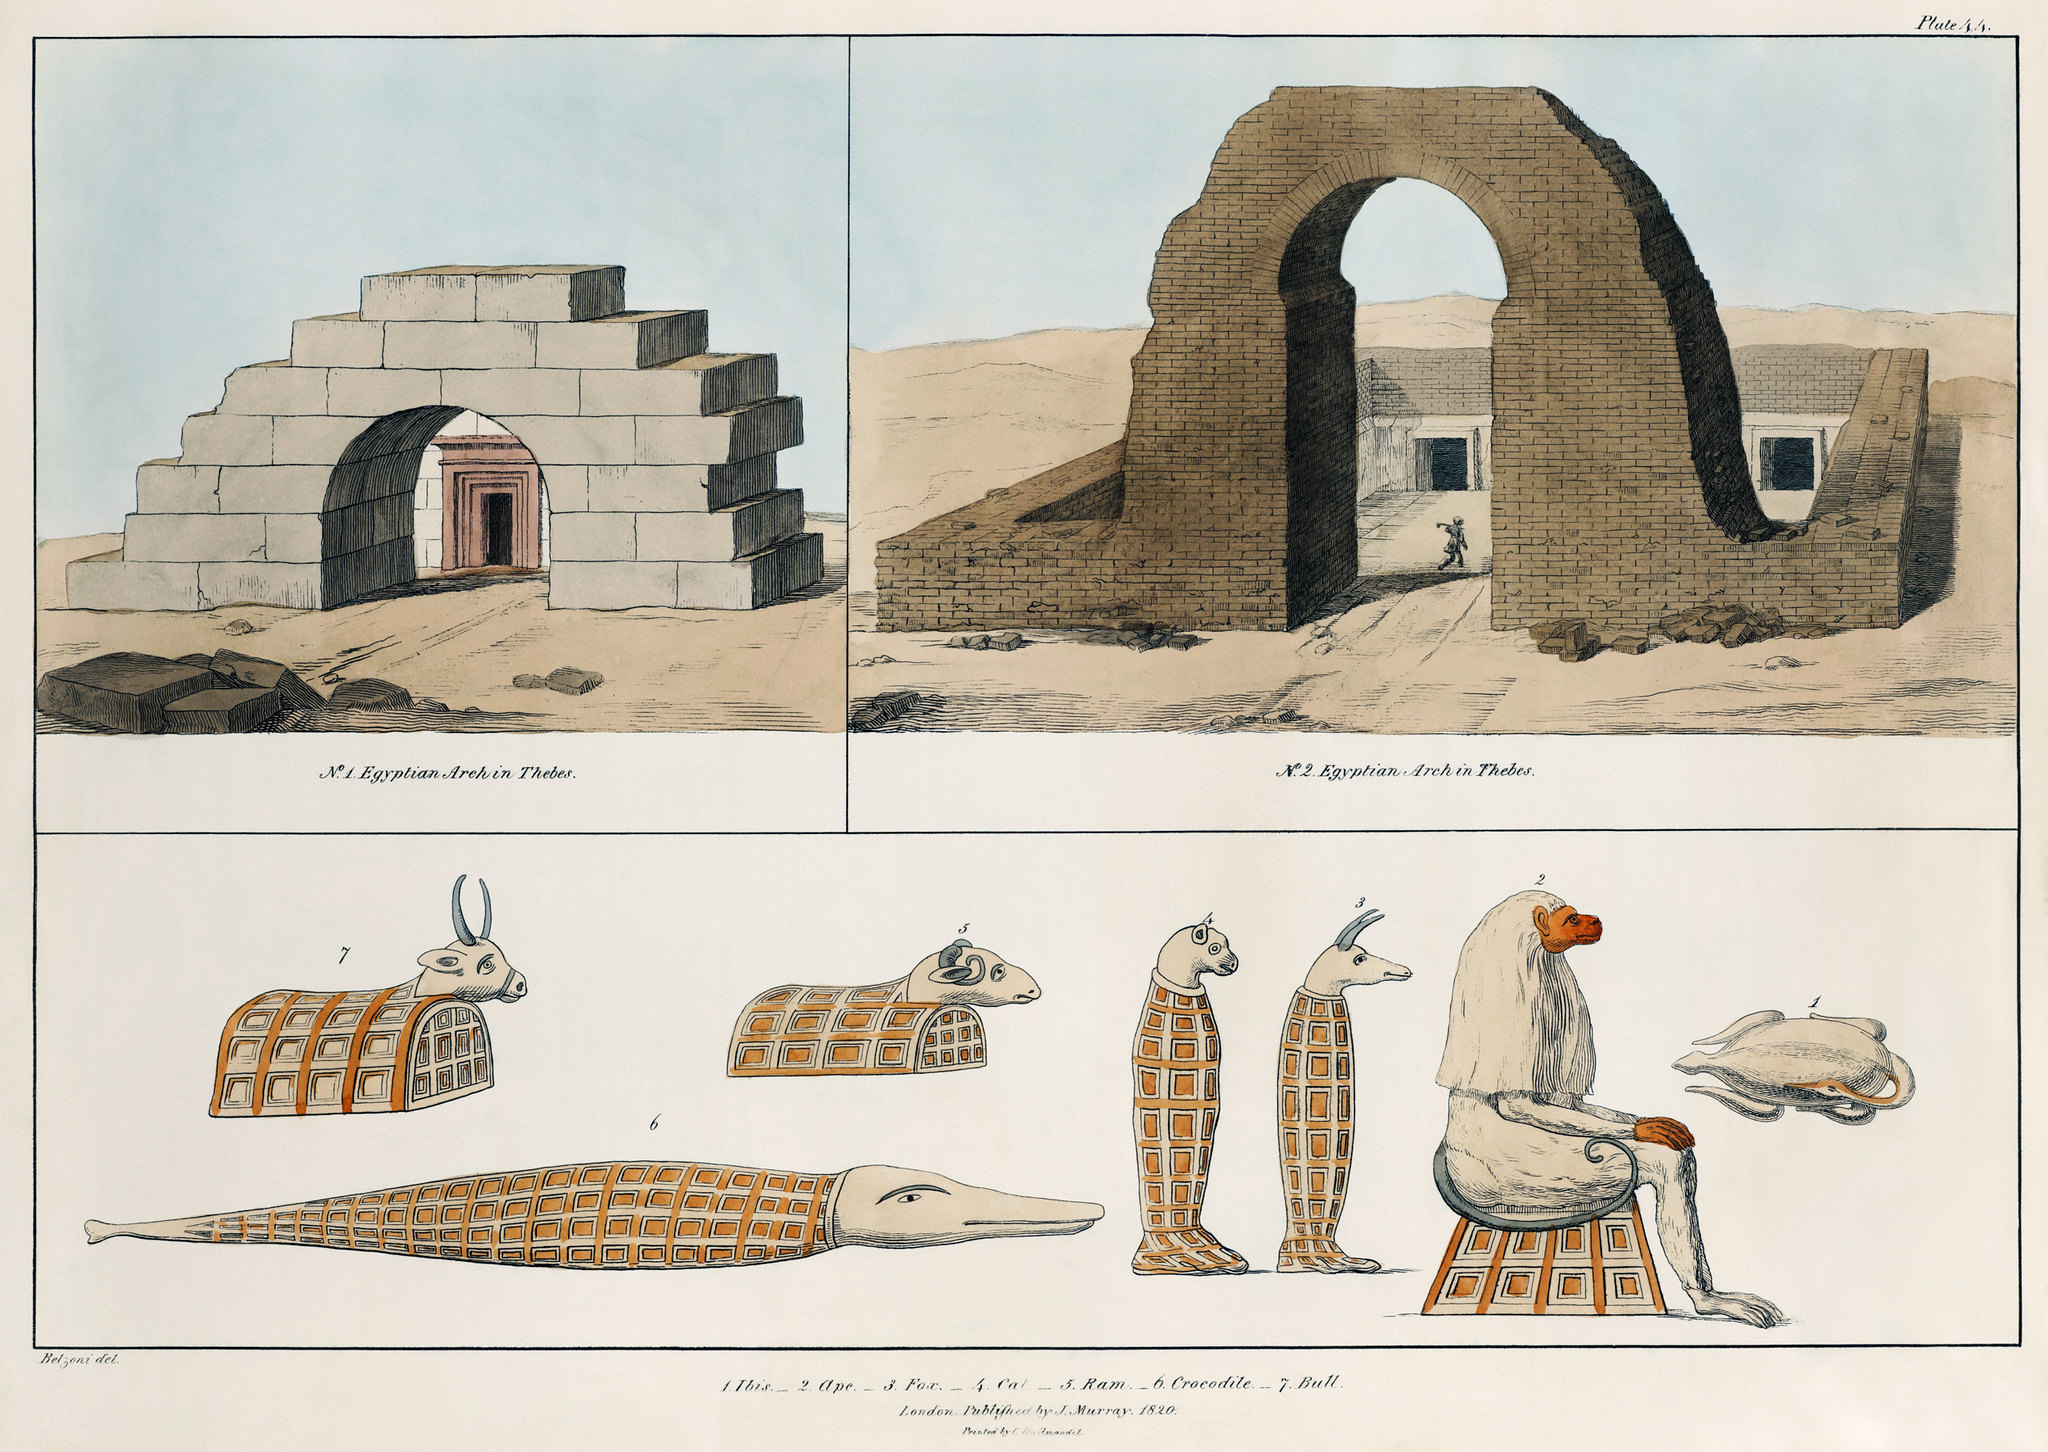 Below the arches, you can see a variety of animal mummies in this illustration by Giovanni Battista Belzoni, a well-known archaeologist